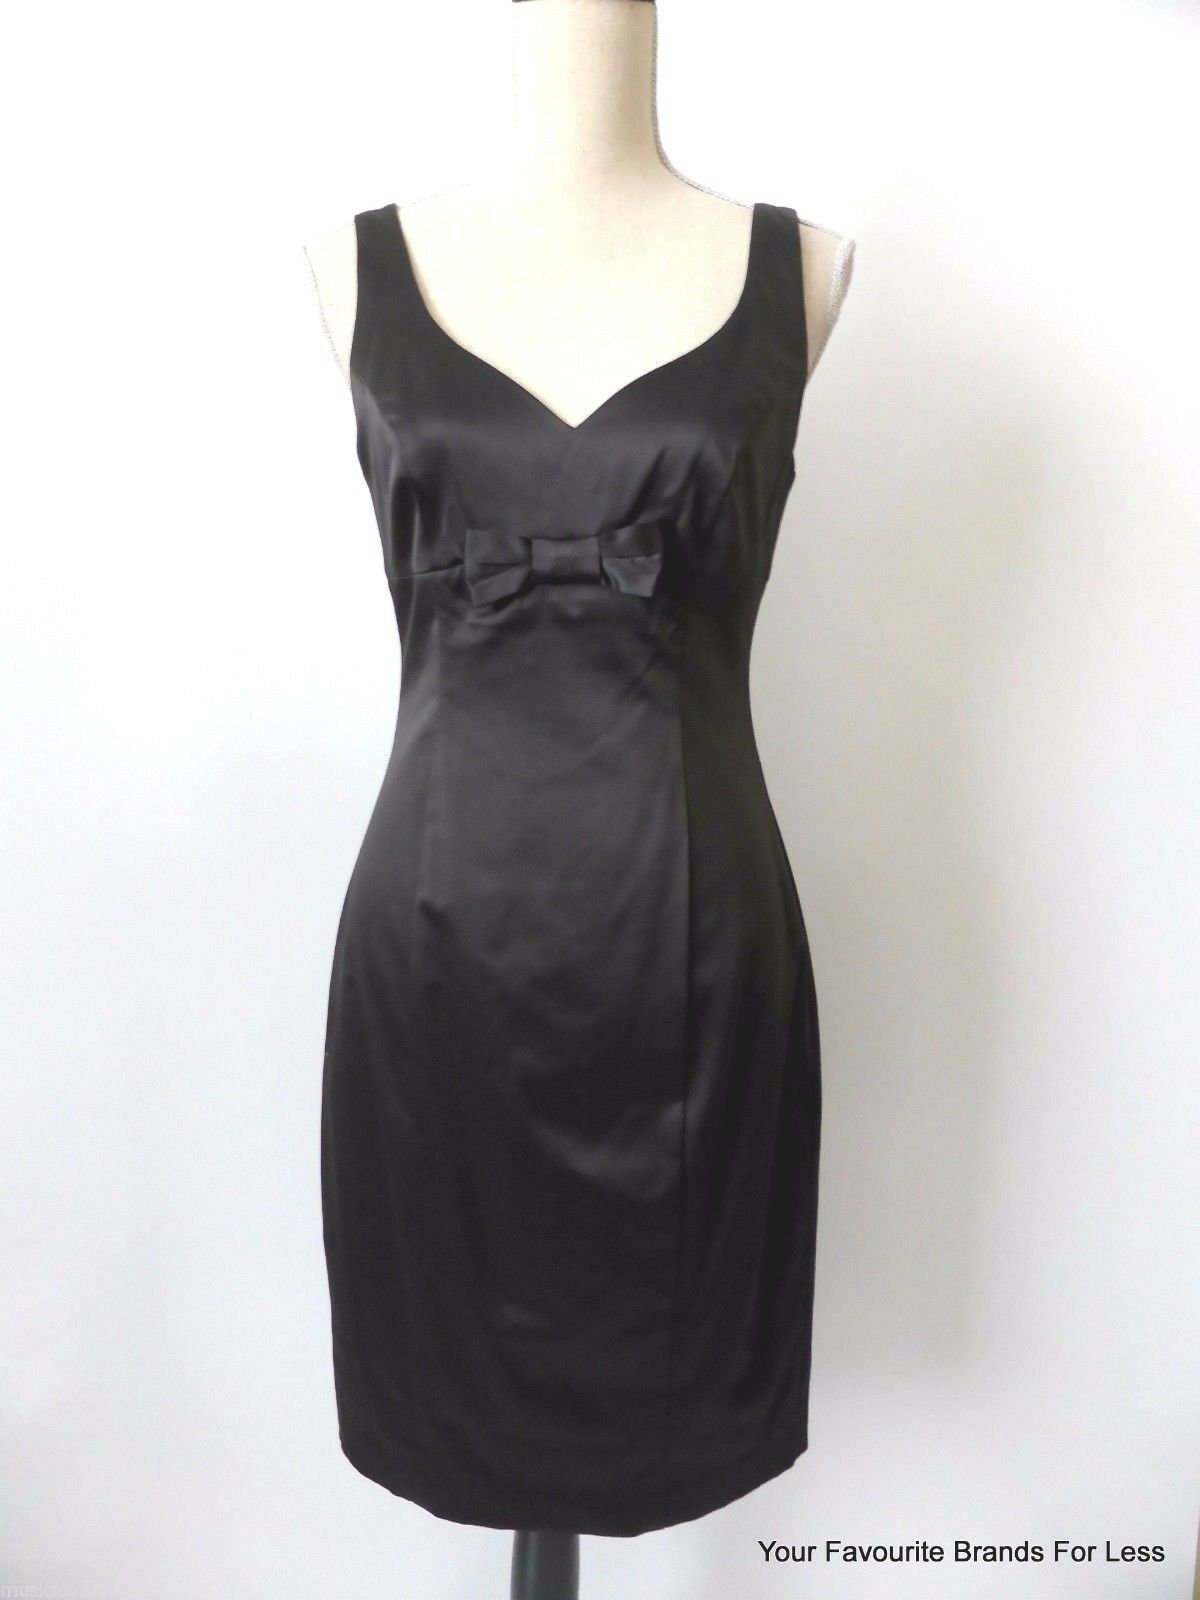 REVIEW - NWT-rrp  Size 10 US 6 Made In Australia  Dress Sleeveless Sheath